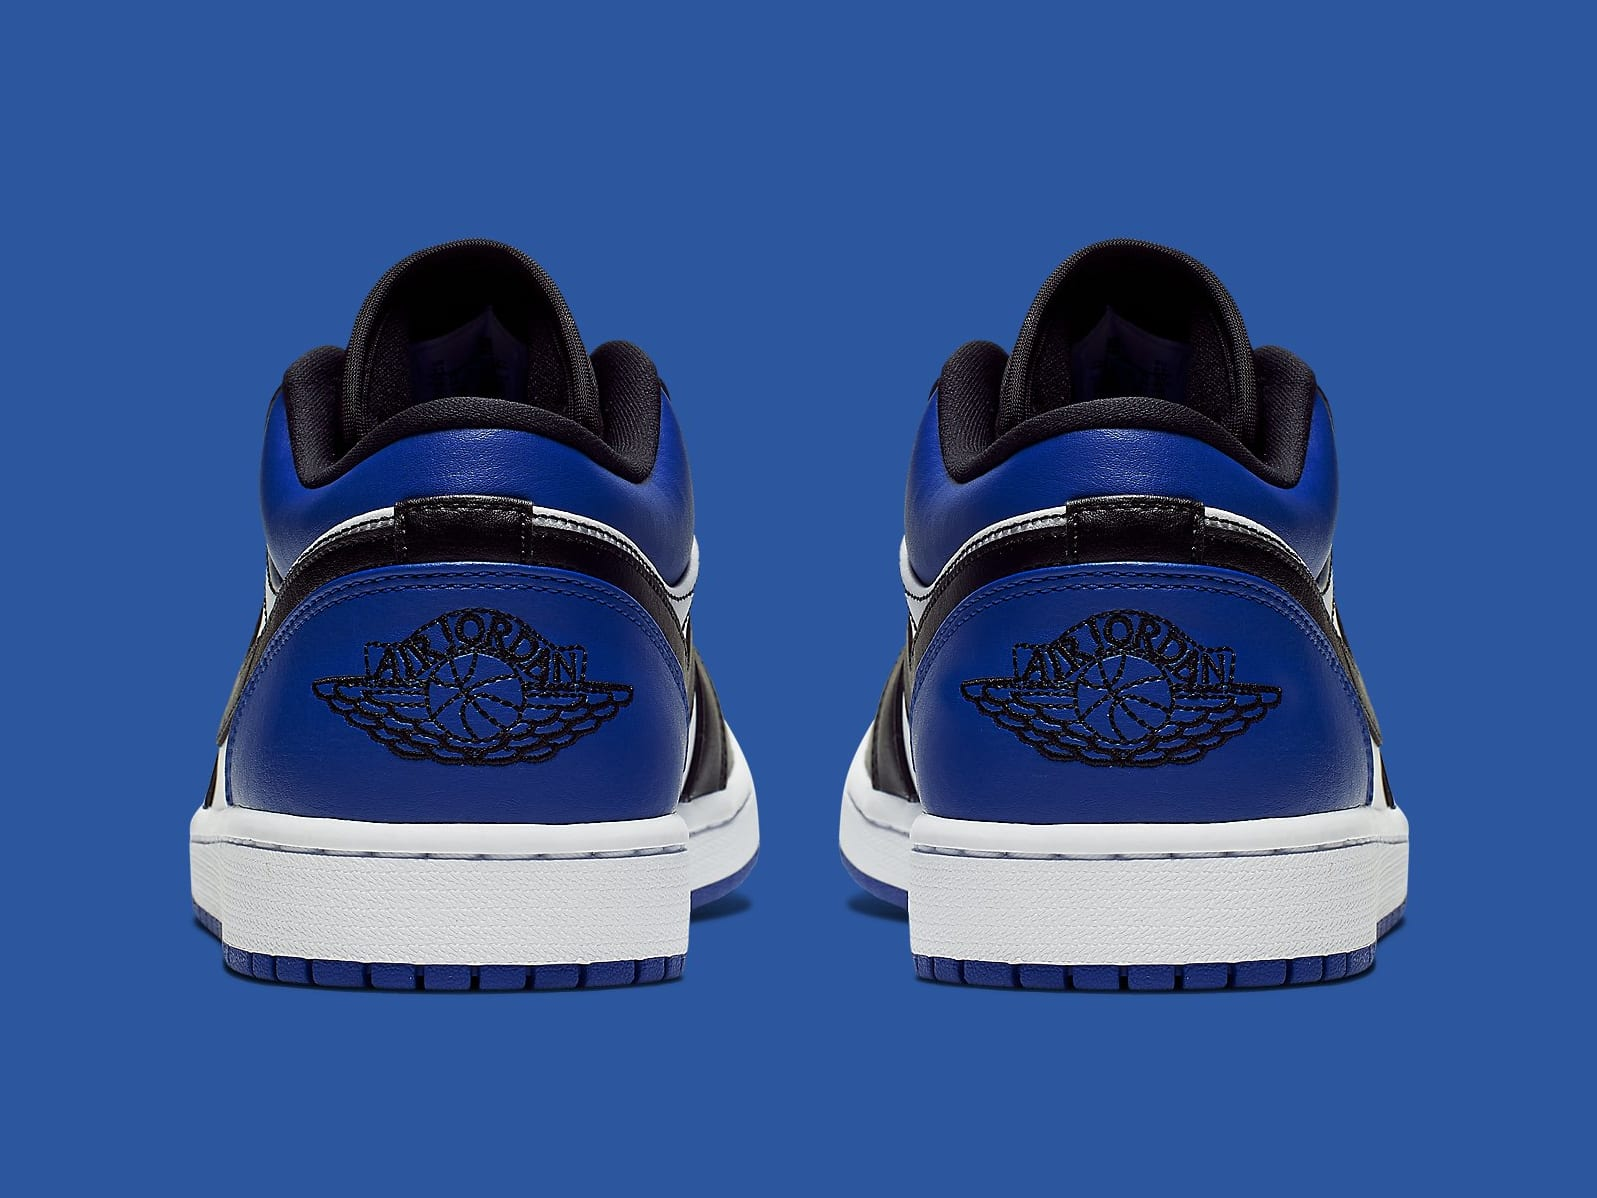 Air Jordan 1 Low Royal Toe Release Date CQ9446-400 Heel